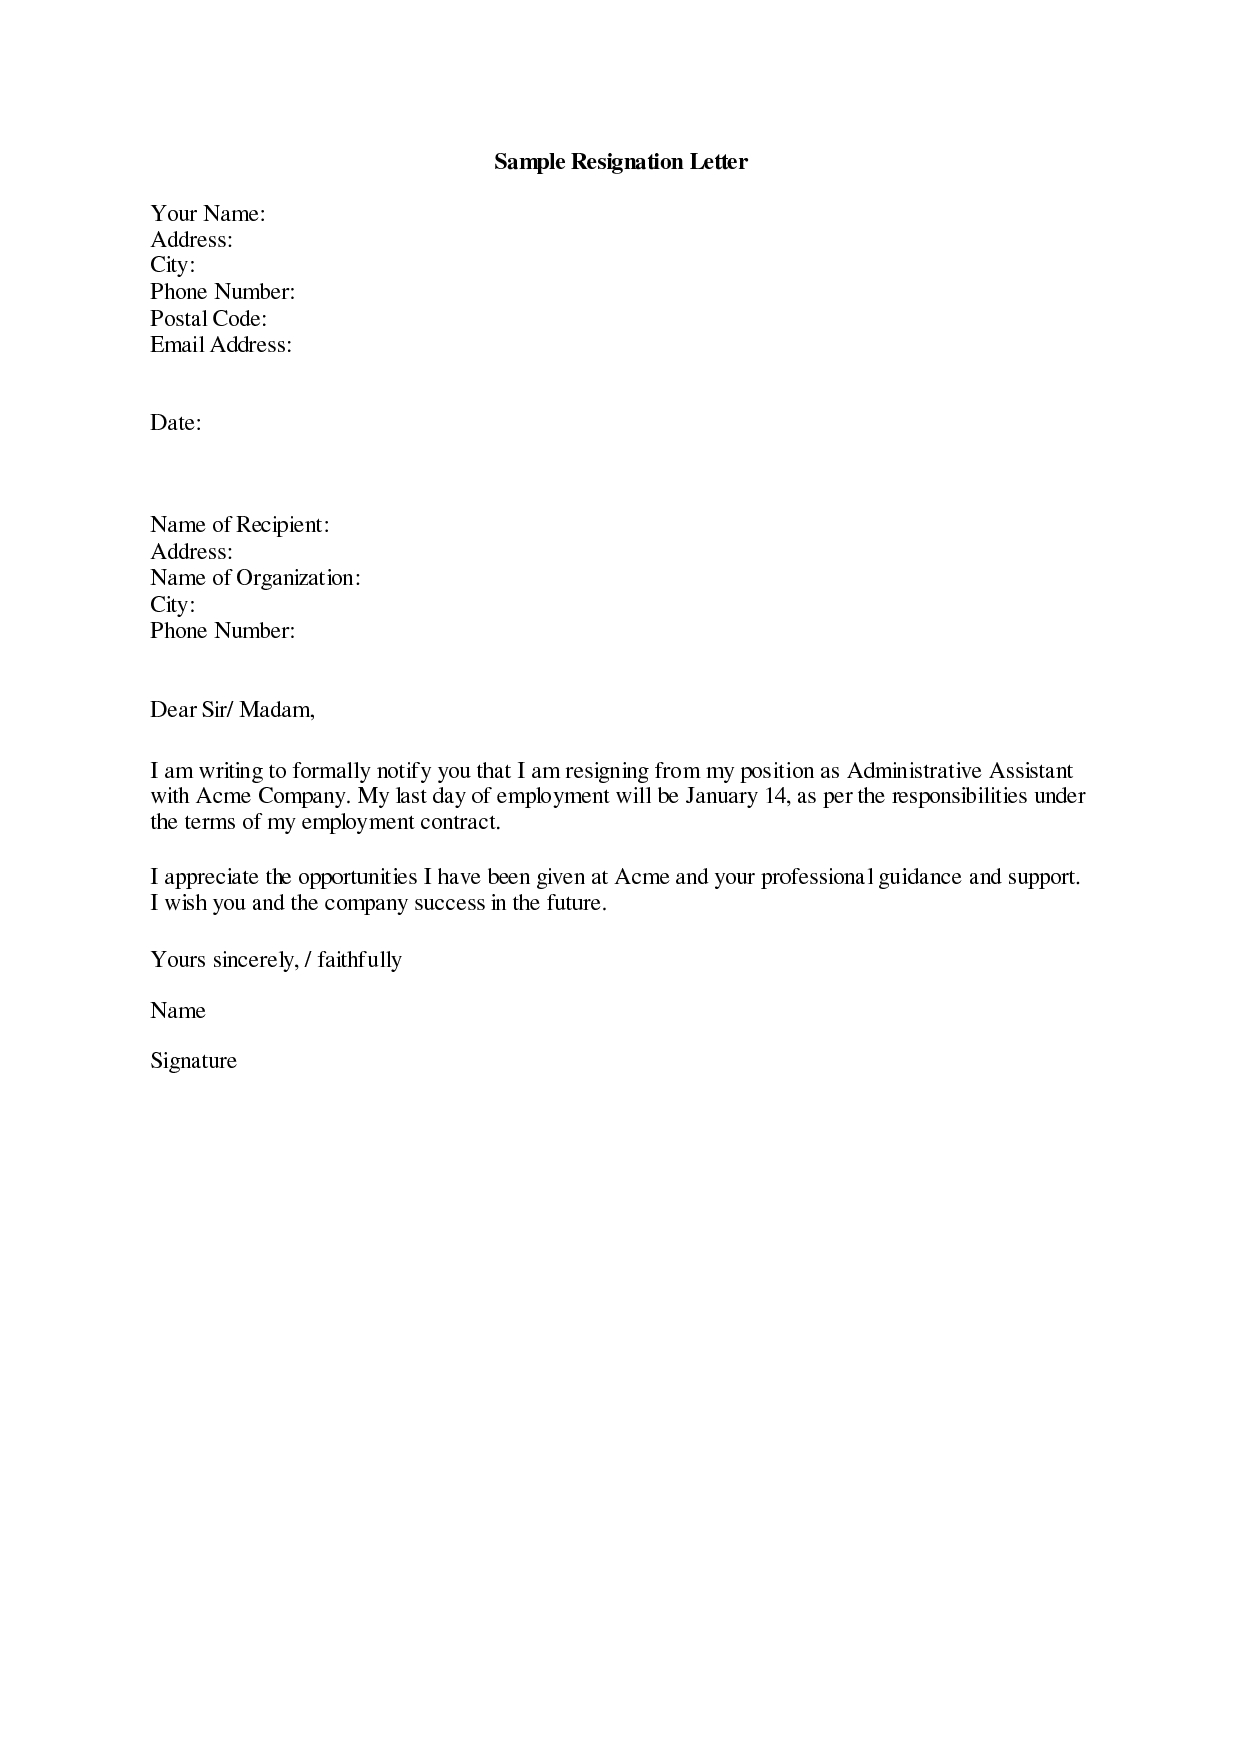 Microsoft Office Resignation Letter Template - Resignation Letter Sample 19 Letter Of Resignation